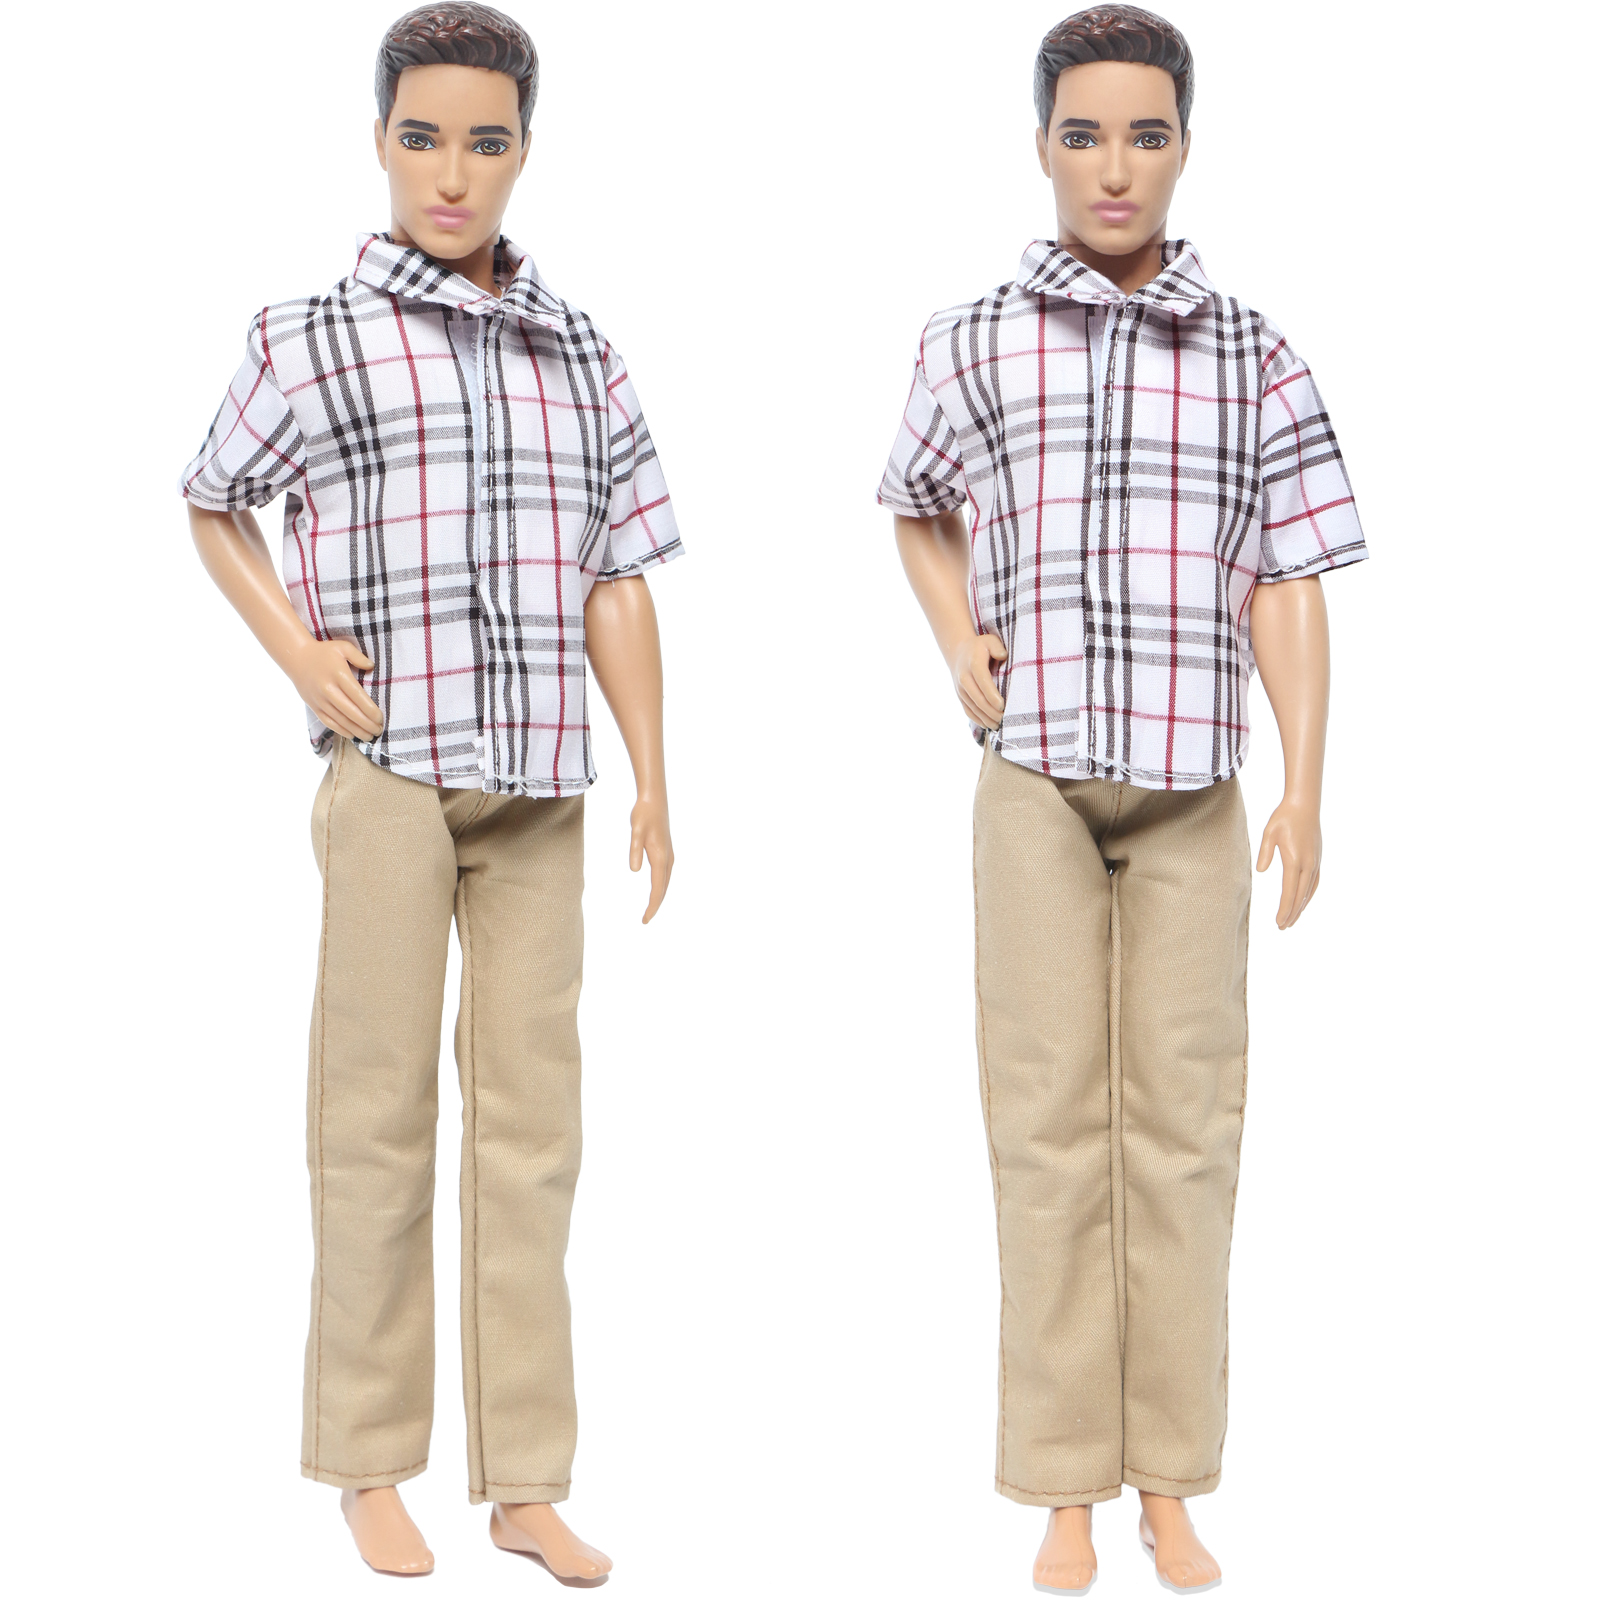 Handsome Men's Outfit High Quality Shirt Khaki Trousers Pants Wedding Party Wear Clothes For Barbie Doll Friend Ken Accessories